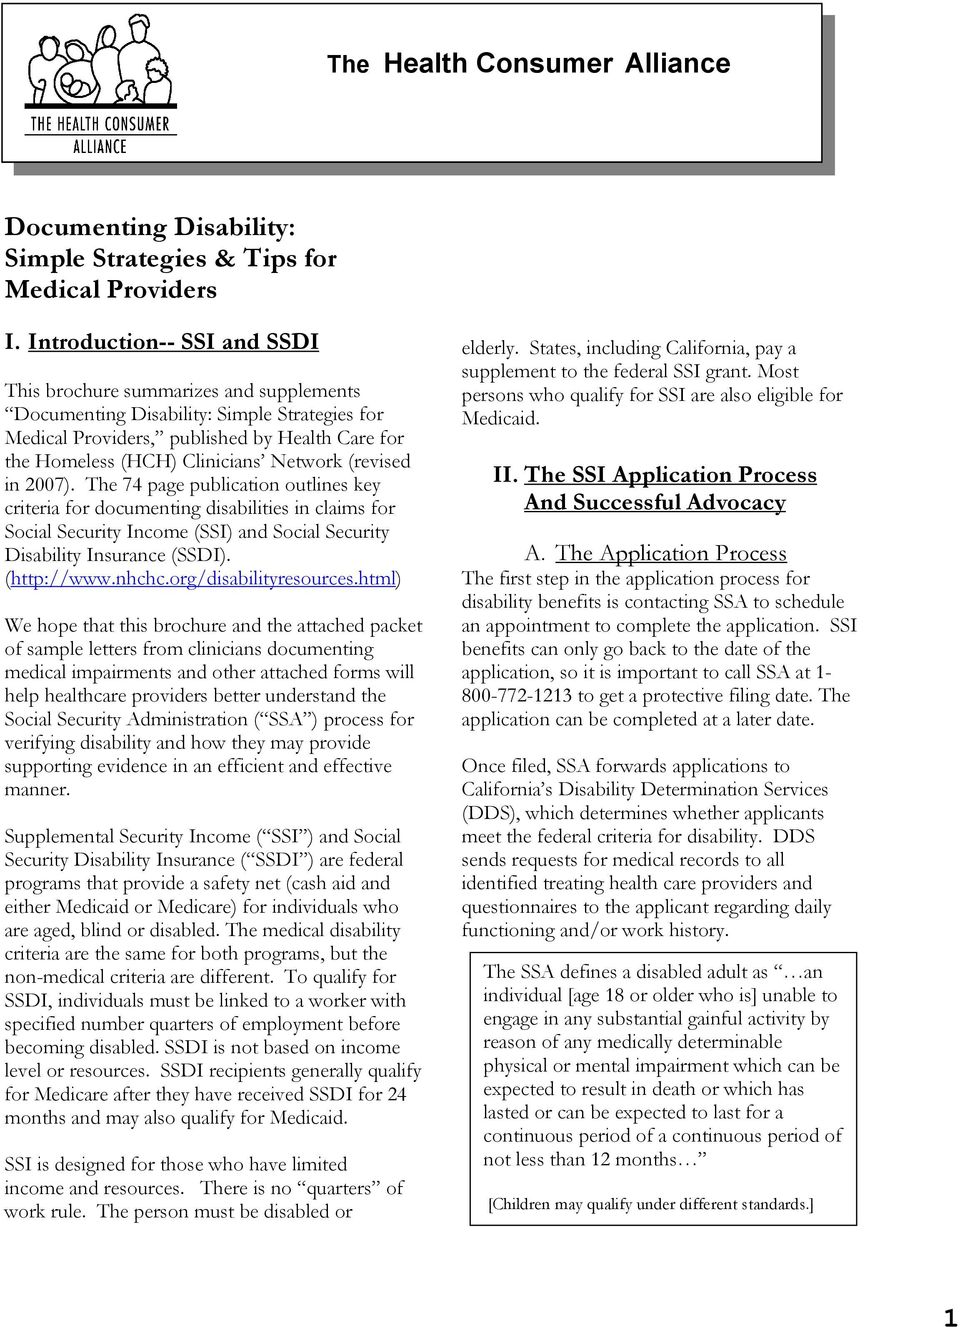 Network (revised in 2007). The 74 page publication outlines key criteria for documenting disabilities in claims for Social Security Income (SSI) and Social Security Disability Insurance (SSDI).